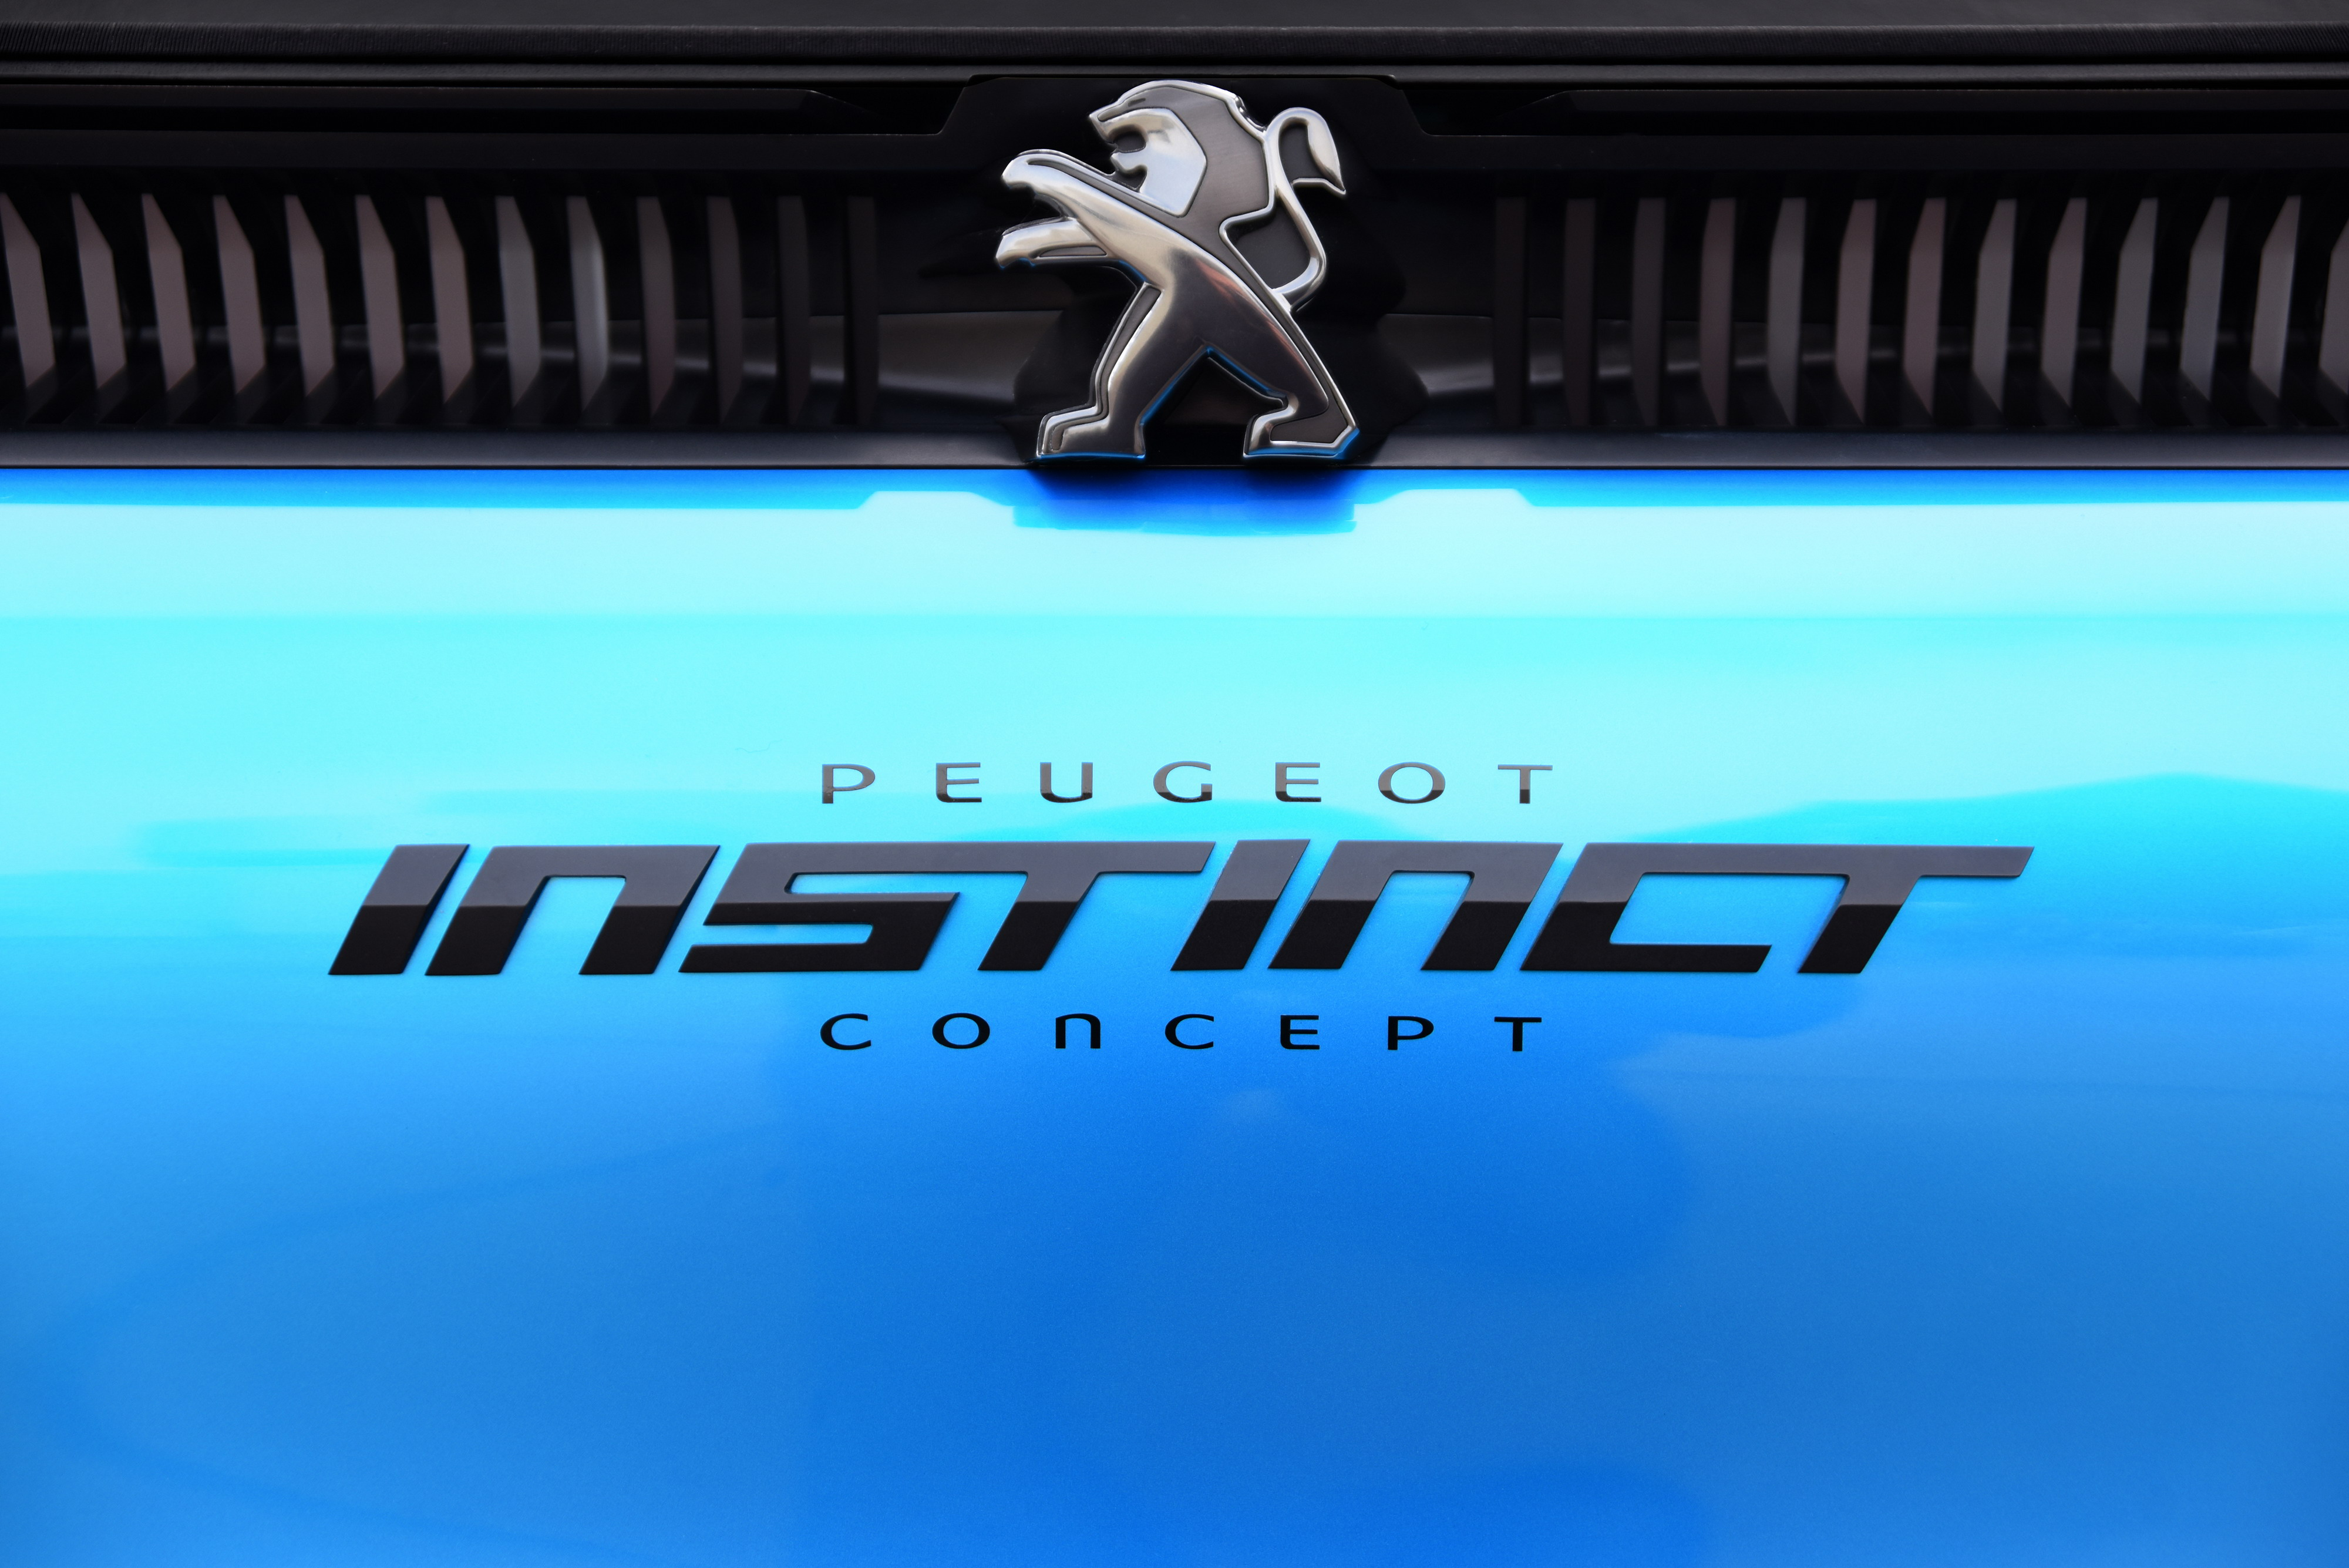 - PHOTOS - PEUGEOT INSTINCT